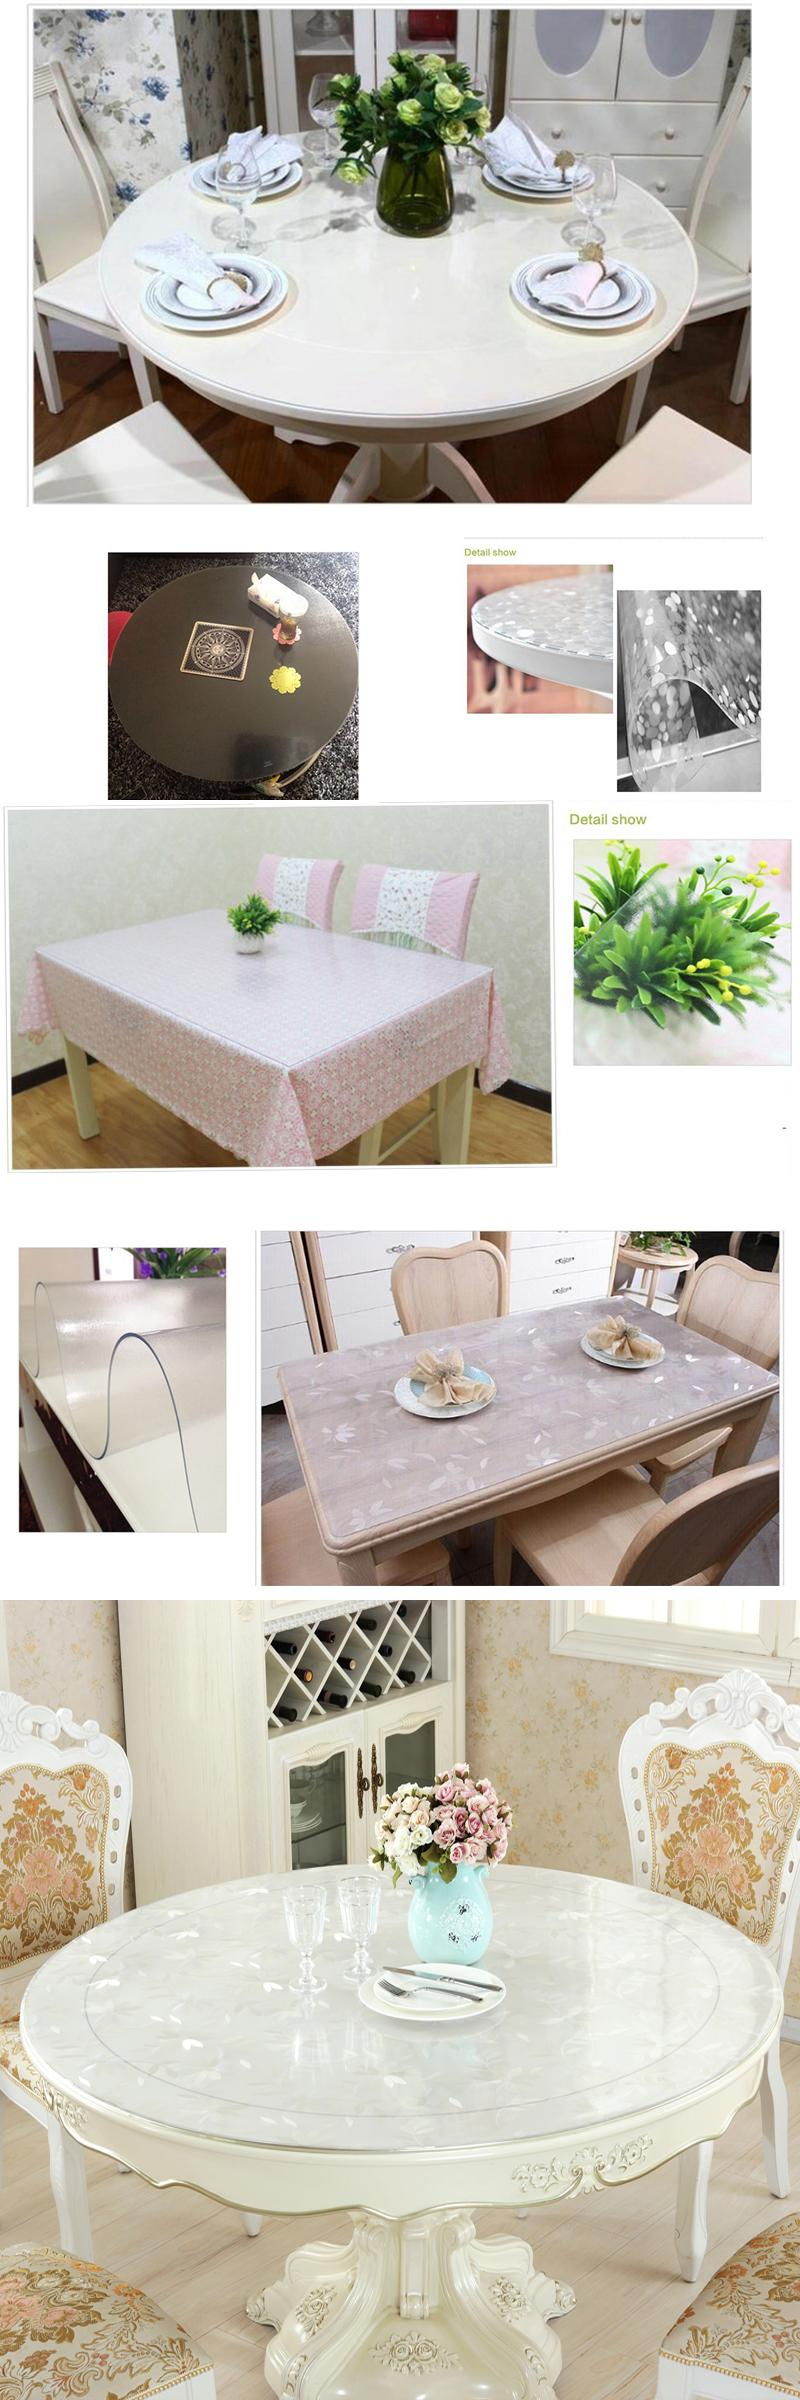 1Pcs Soft Glass Tablecloth For Table Scrub Round Mats Solid Pvc Best Dining Room Tablecloths Decorating Inspiration